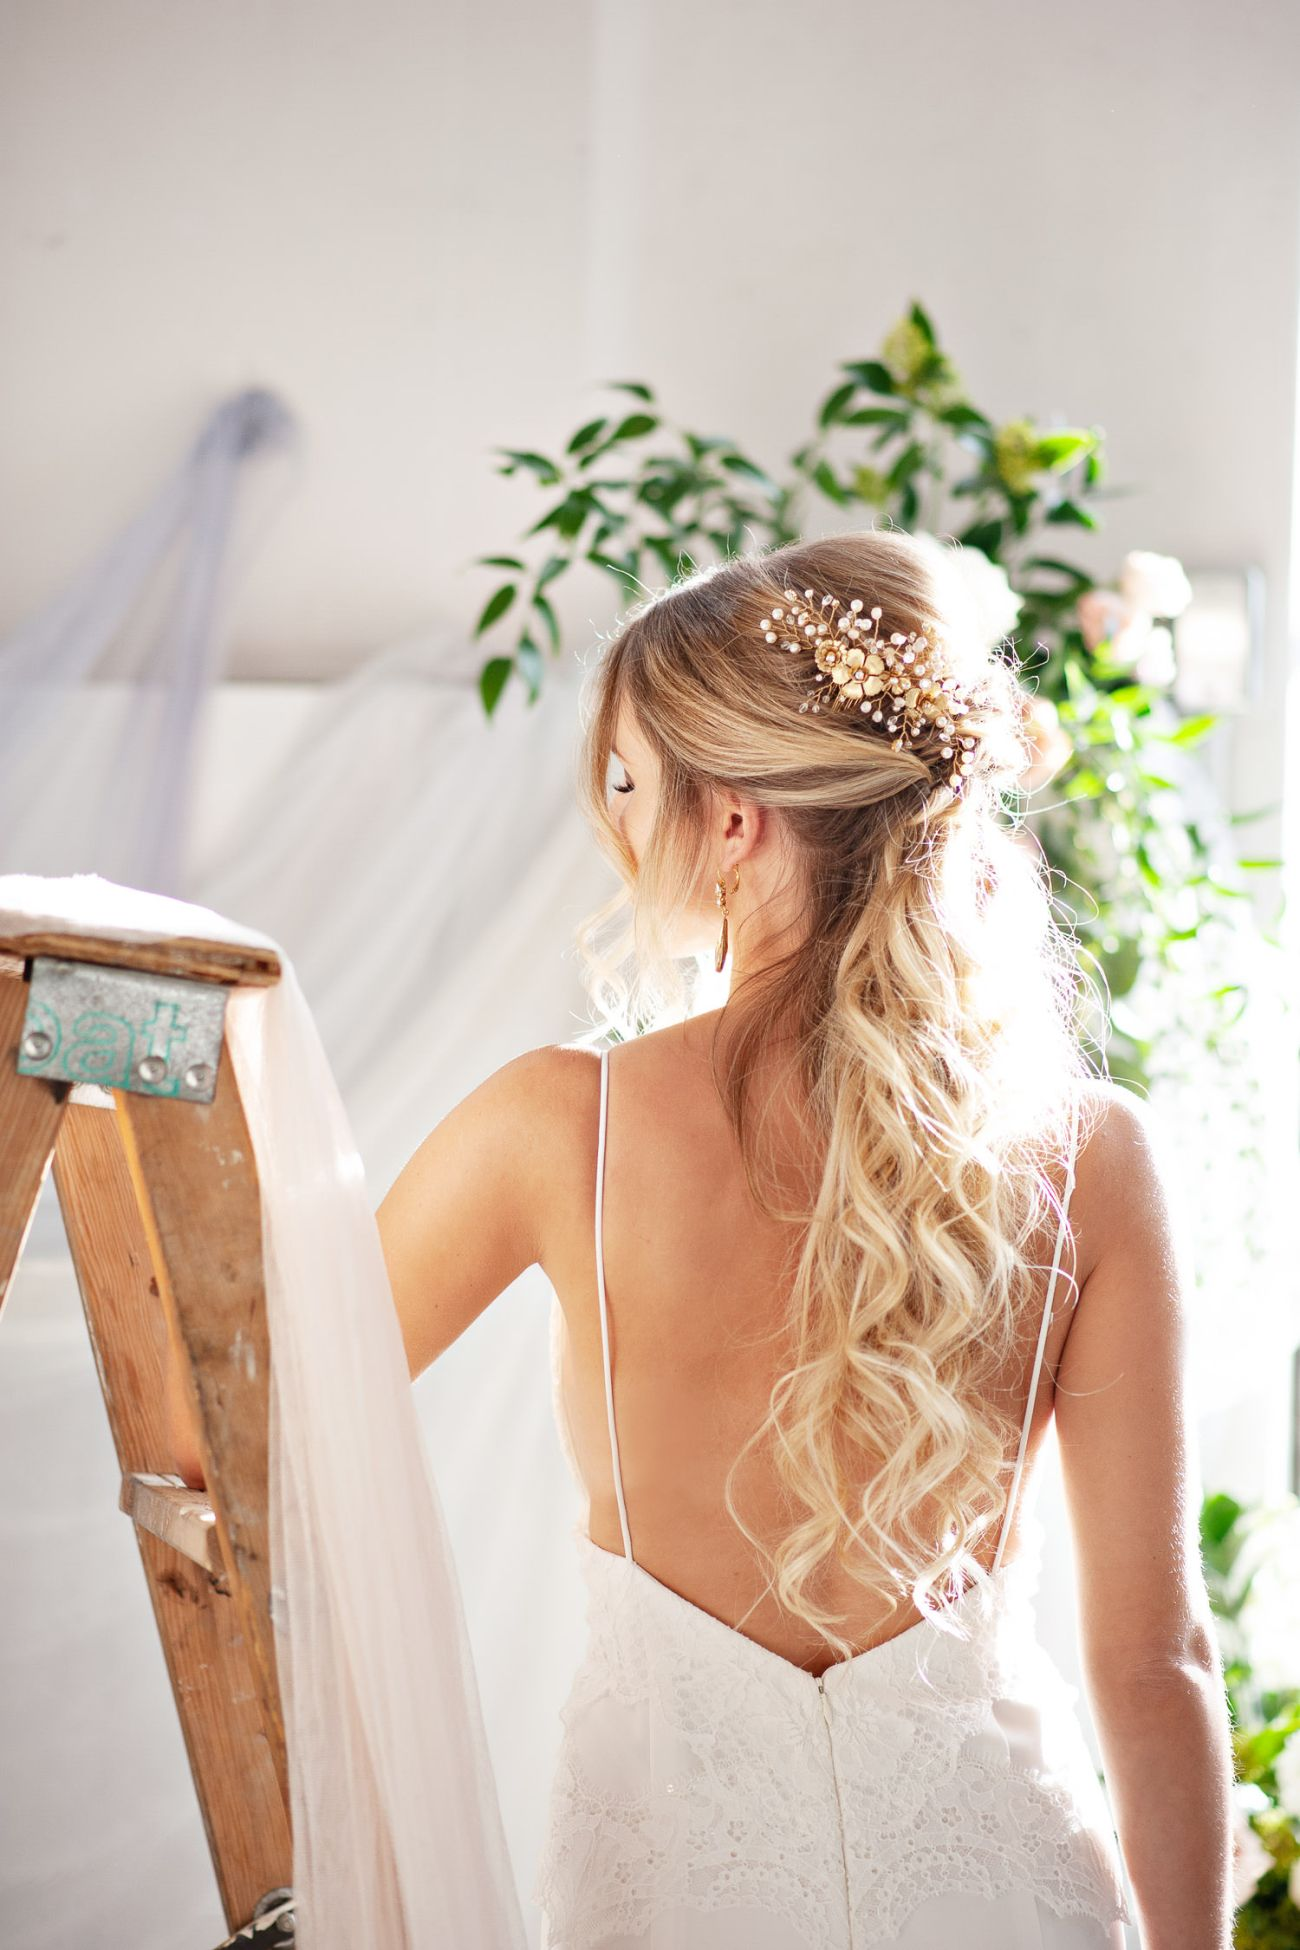 Gold hair comb from Joanna Bisley Design captured by Tara Whittaker Photography